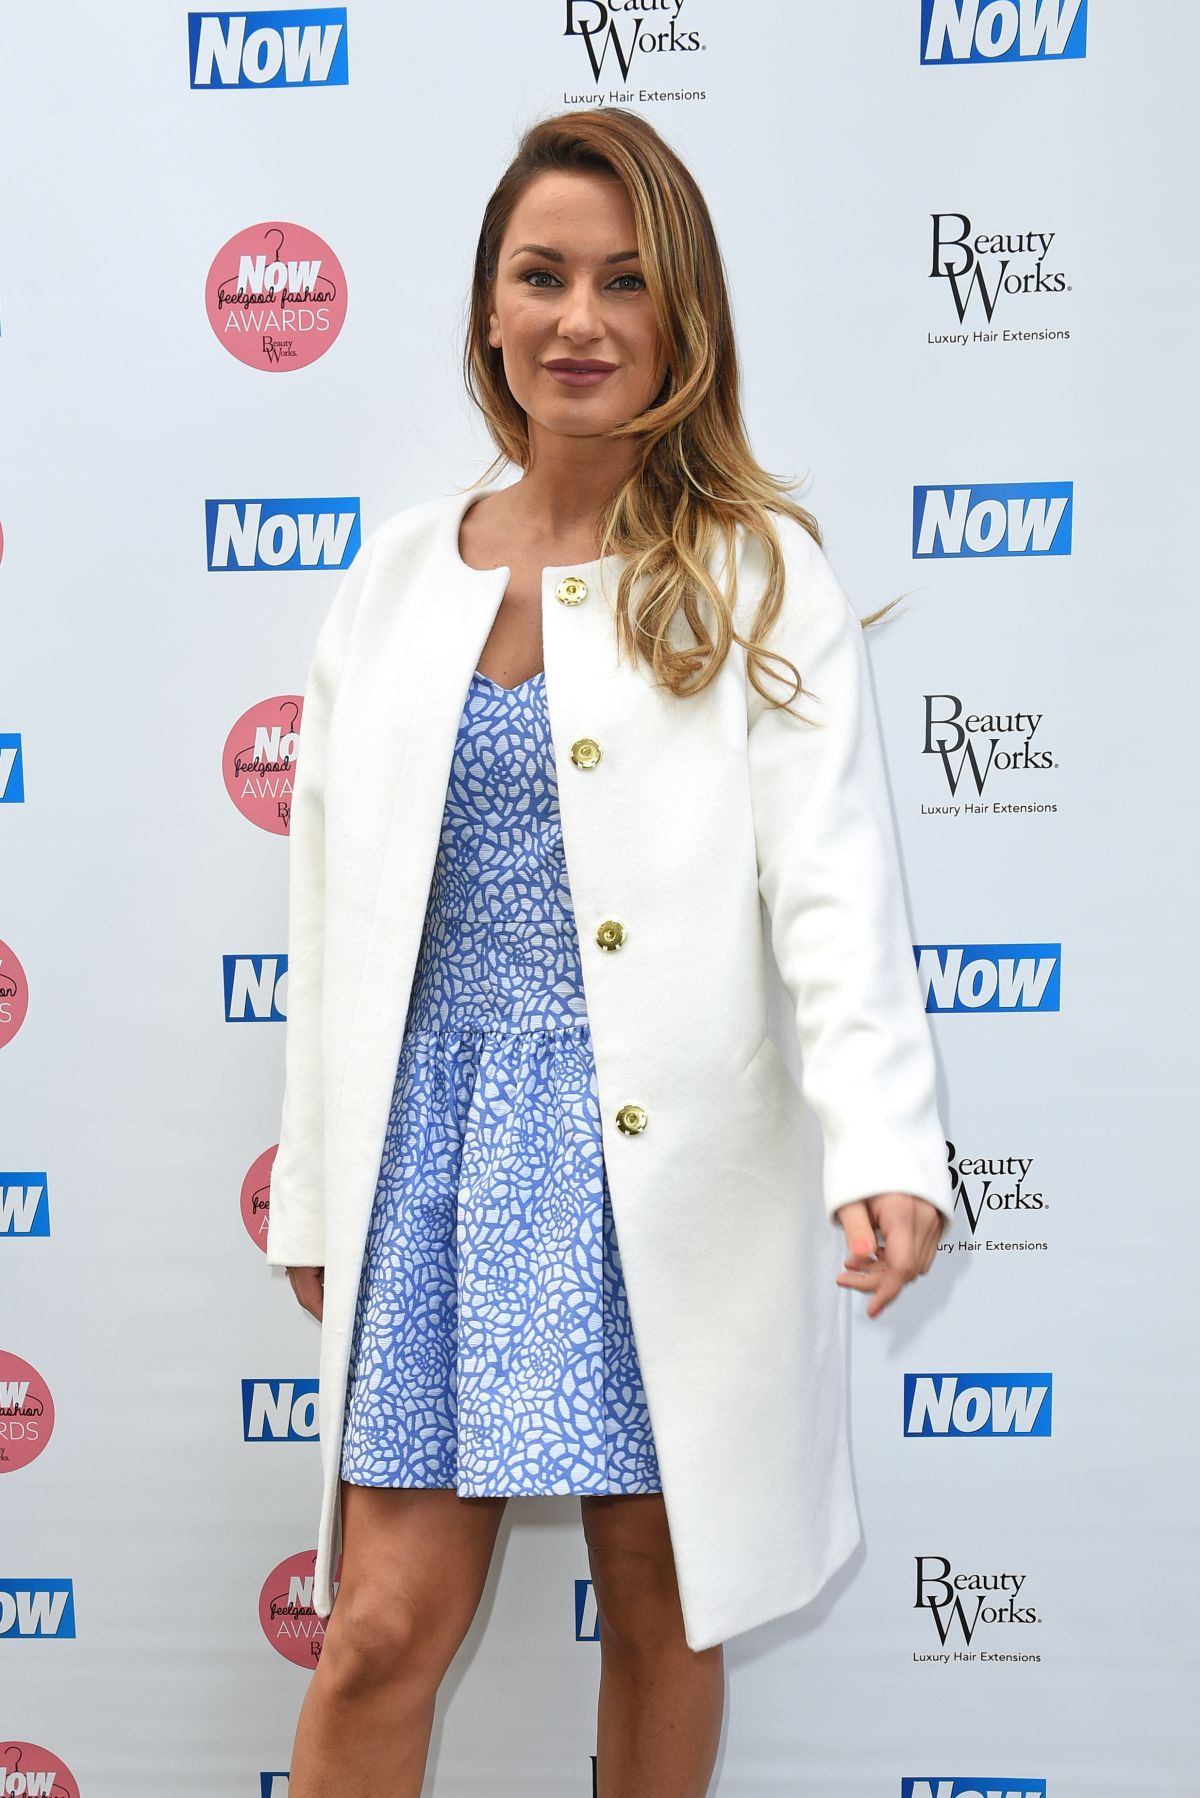 SAM FAIERS At Now Magazine's Feel Good Fashion Awards In